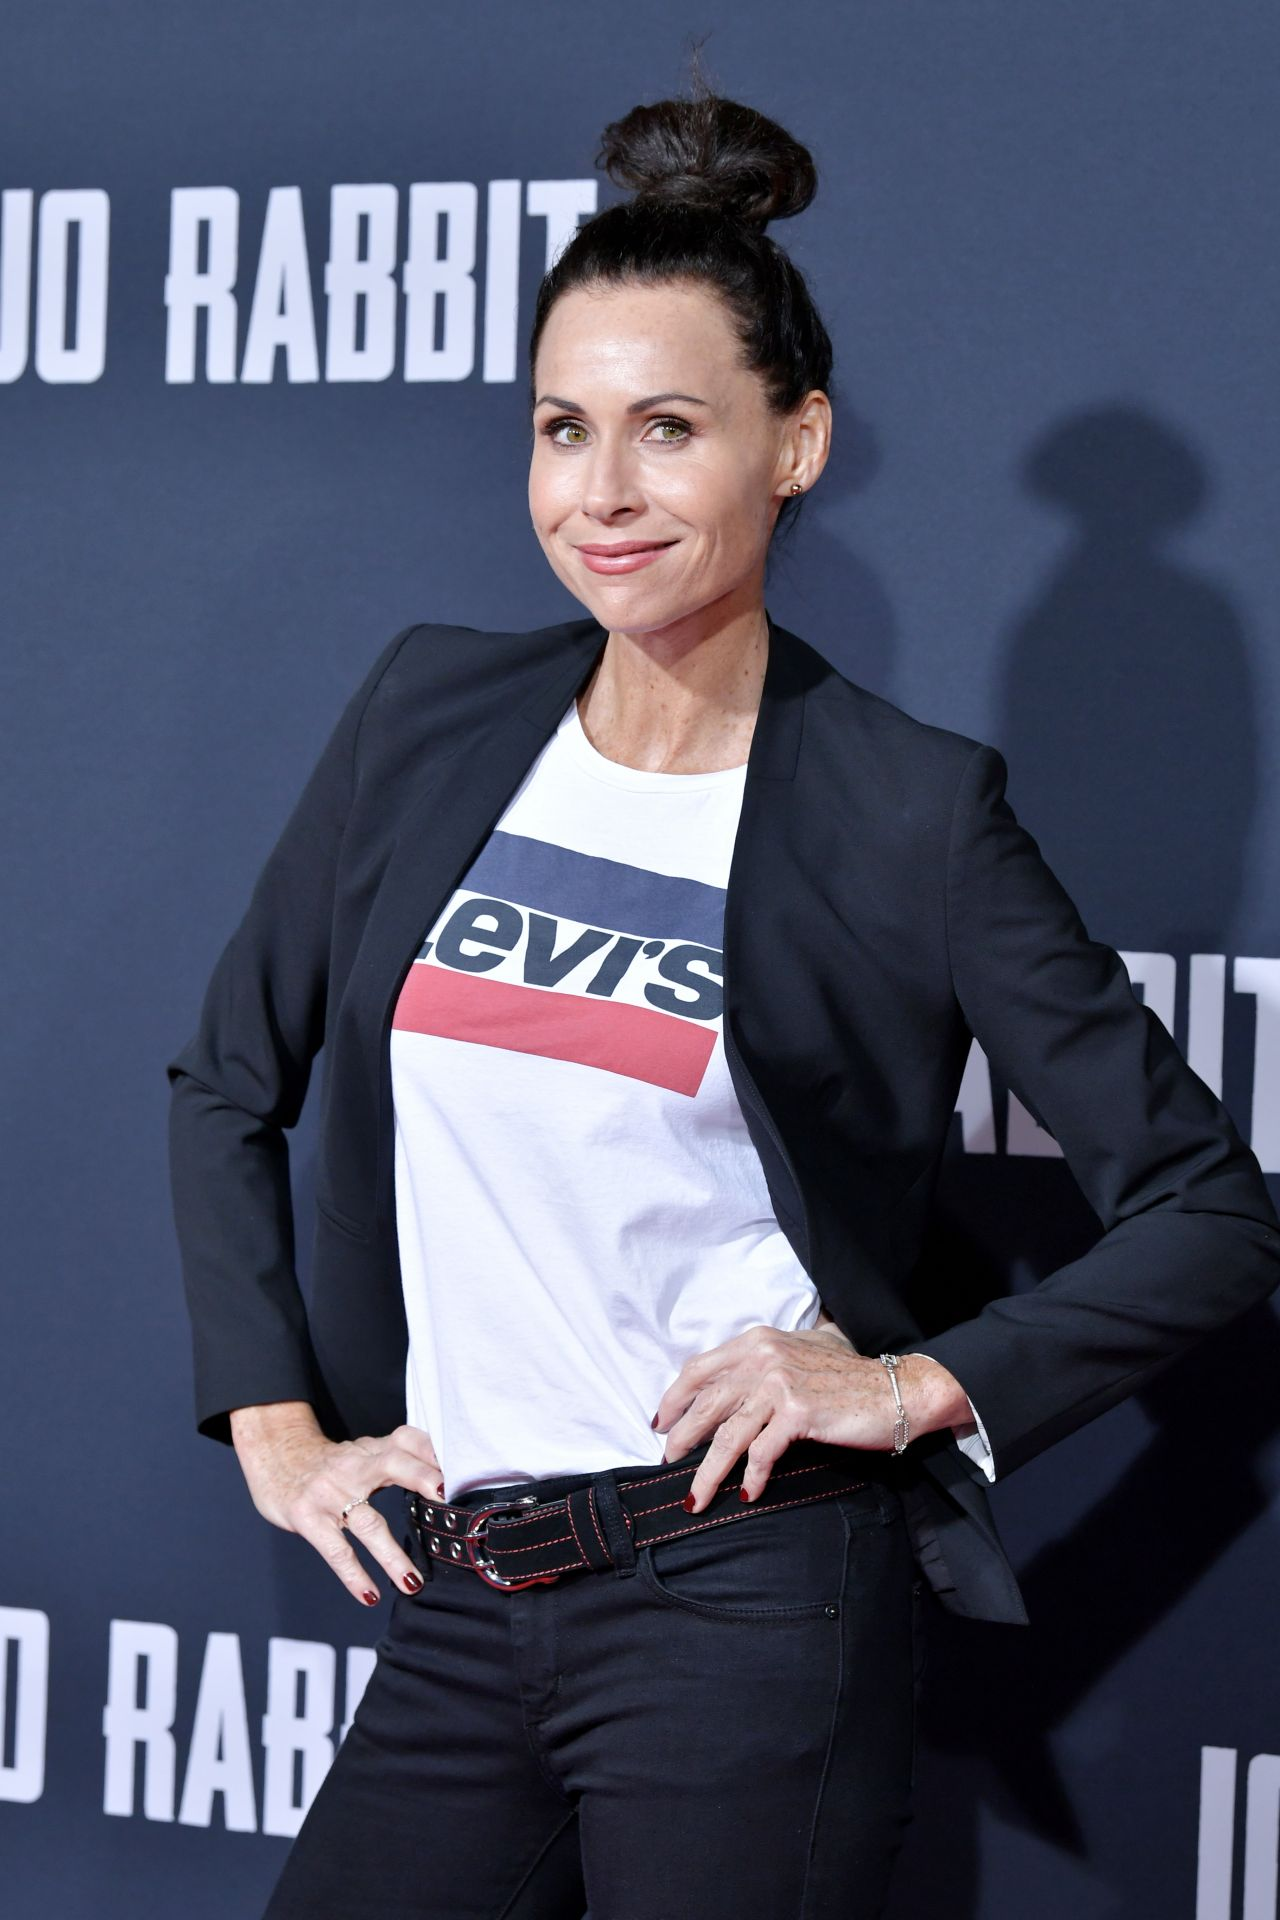 British milf Minnie Driver at JoJo Rabbit movie premiere